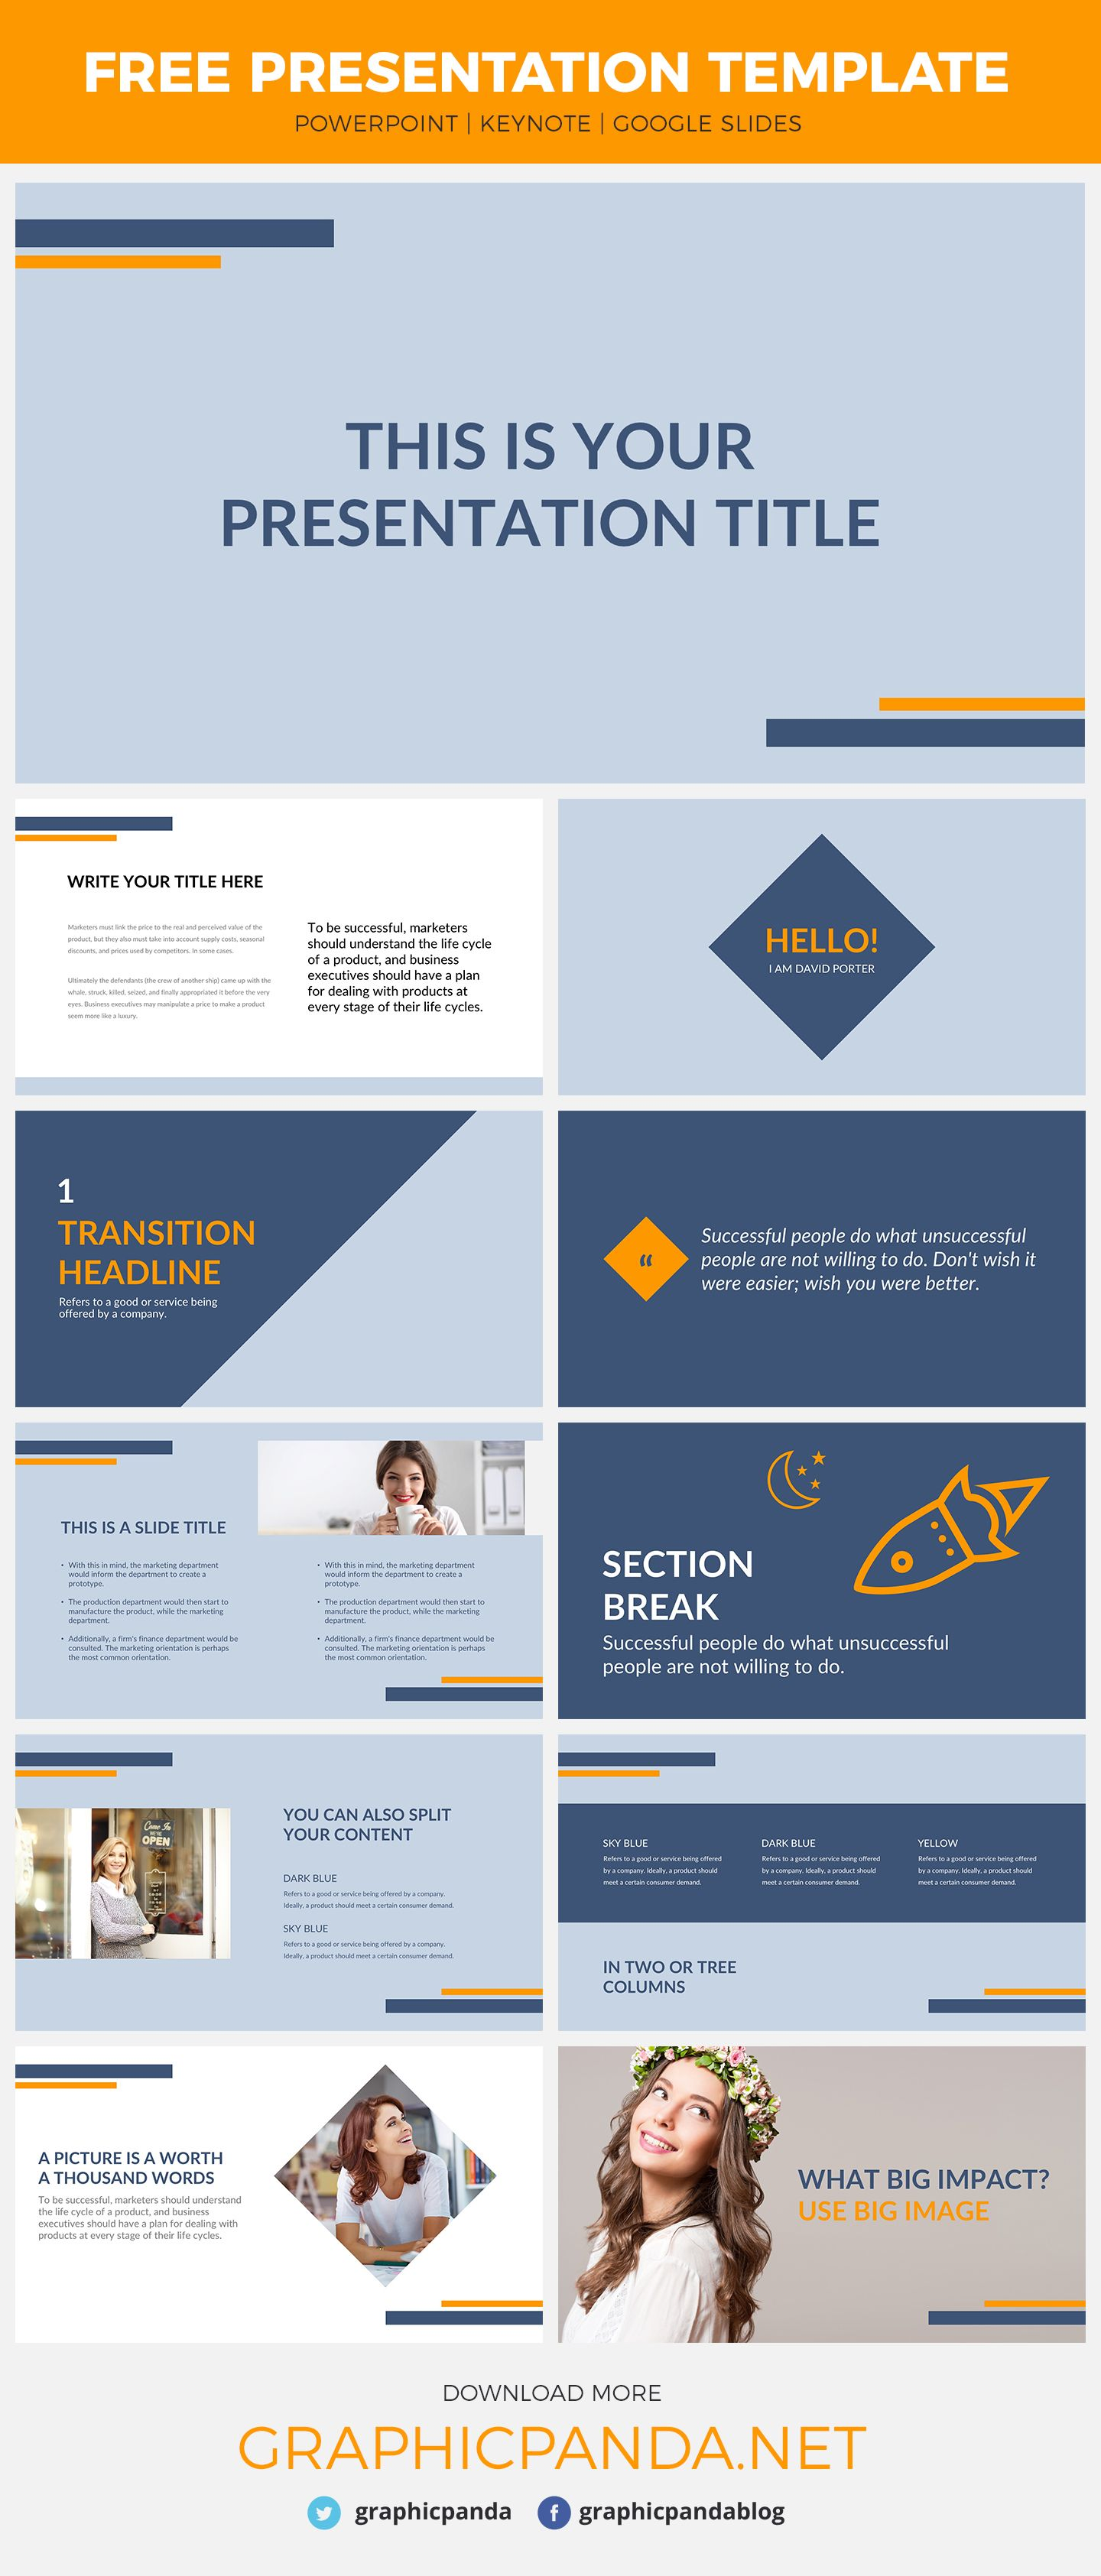 The Spark Free Google Slides Theme Is Super Creative And Is Bound To End In A Successful Presentation That Your C Google Slides Themes Powerpoint Google Slides